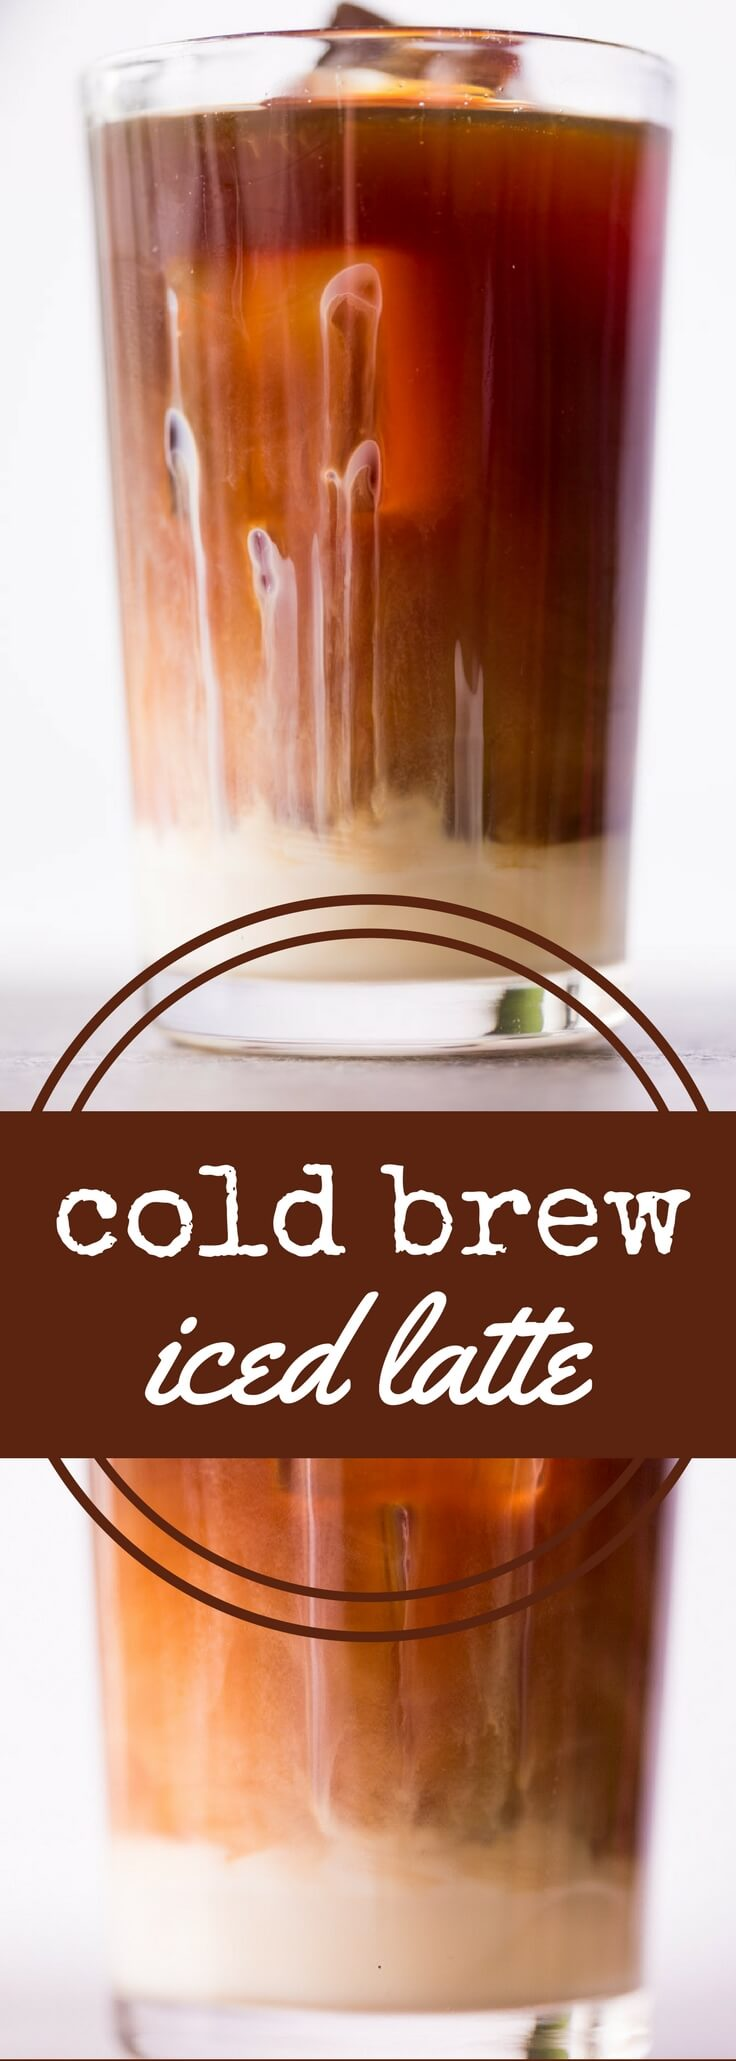 Smooth cold brew coffee combined with sweetened condensed milk makes a delicious iced latte!  This iced latte is especially refreshing during hot weather.